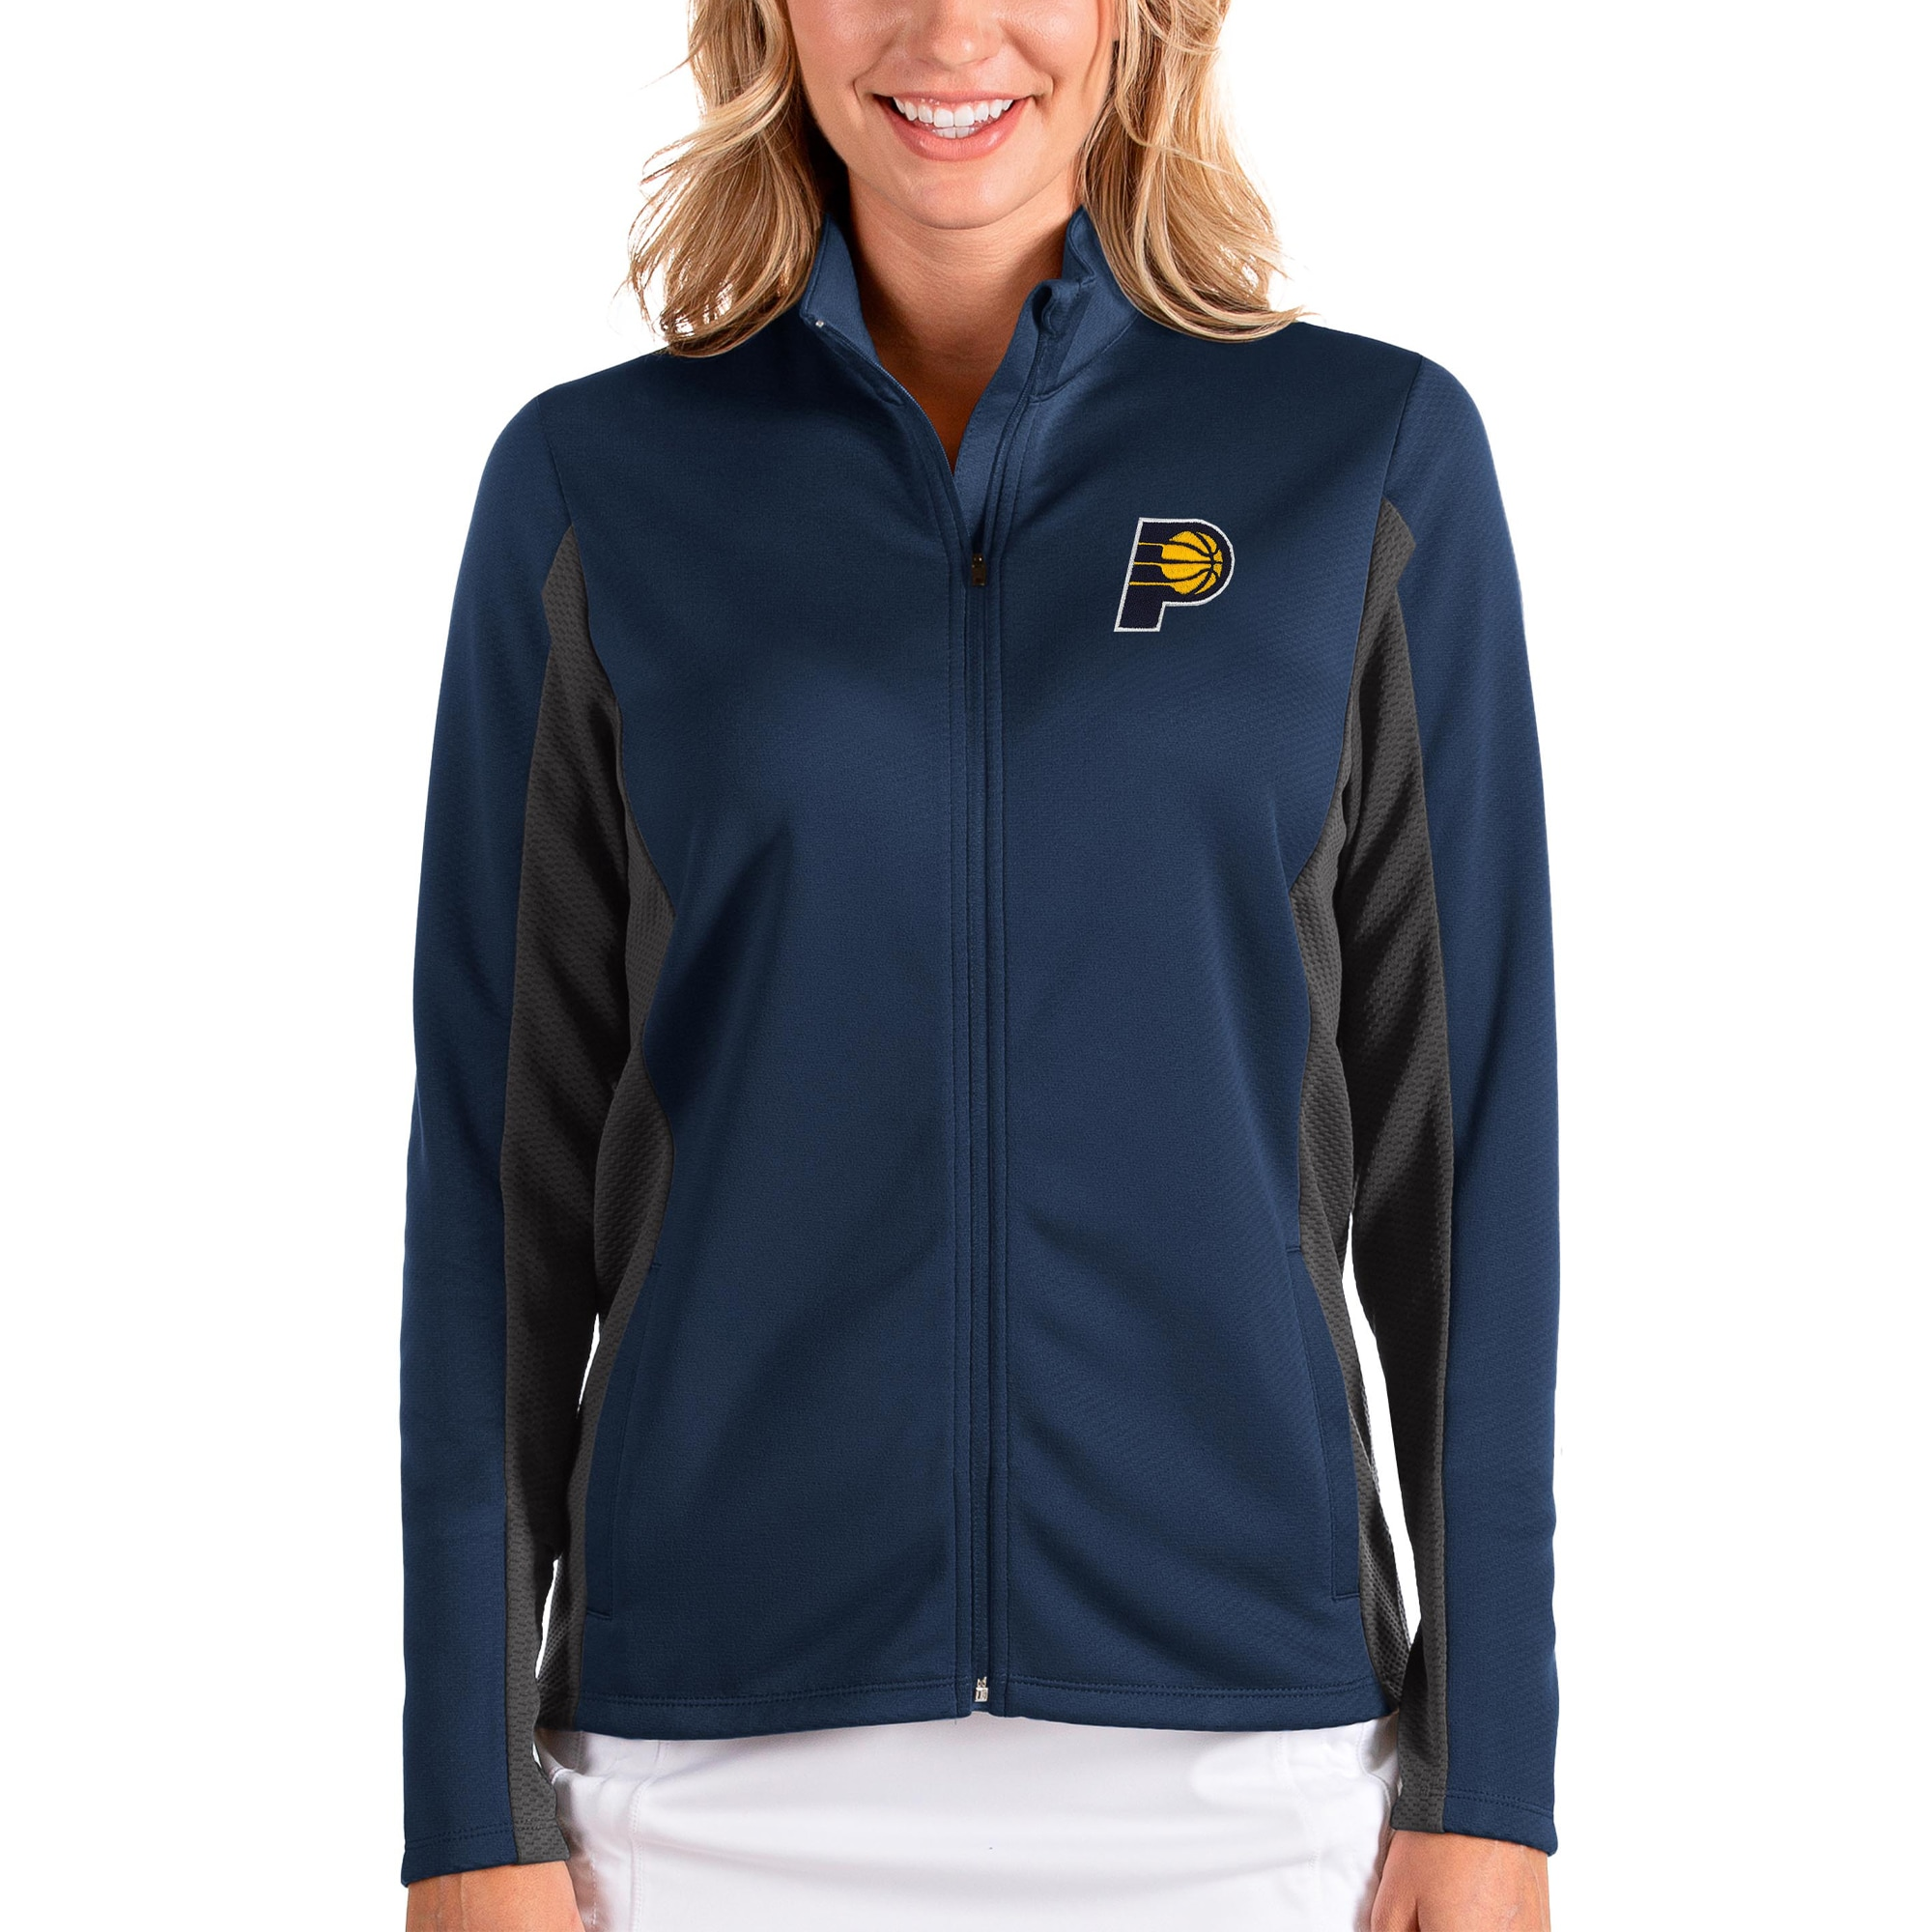 Indiana Pacers Antigua Women's Passage Full-Zip Jacket - Navy/Charcoal